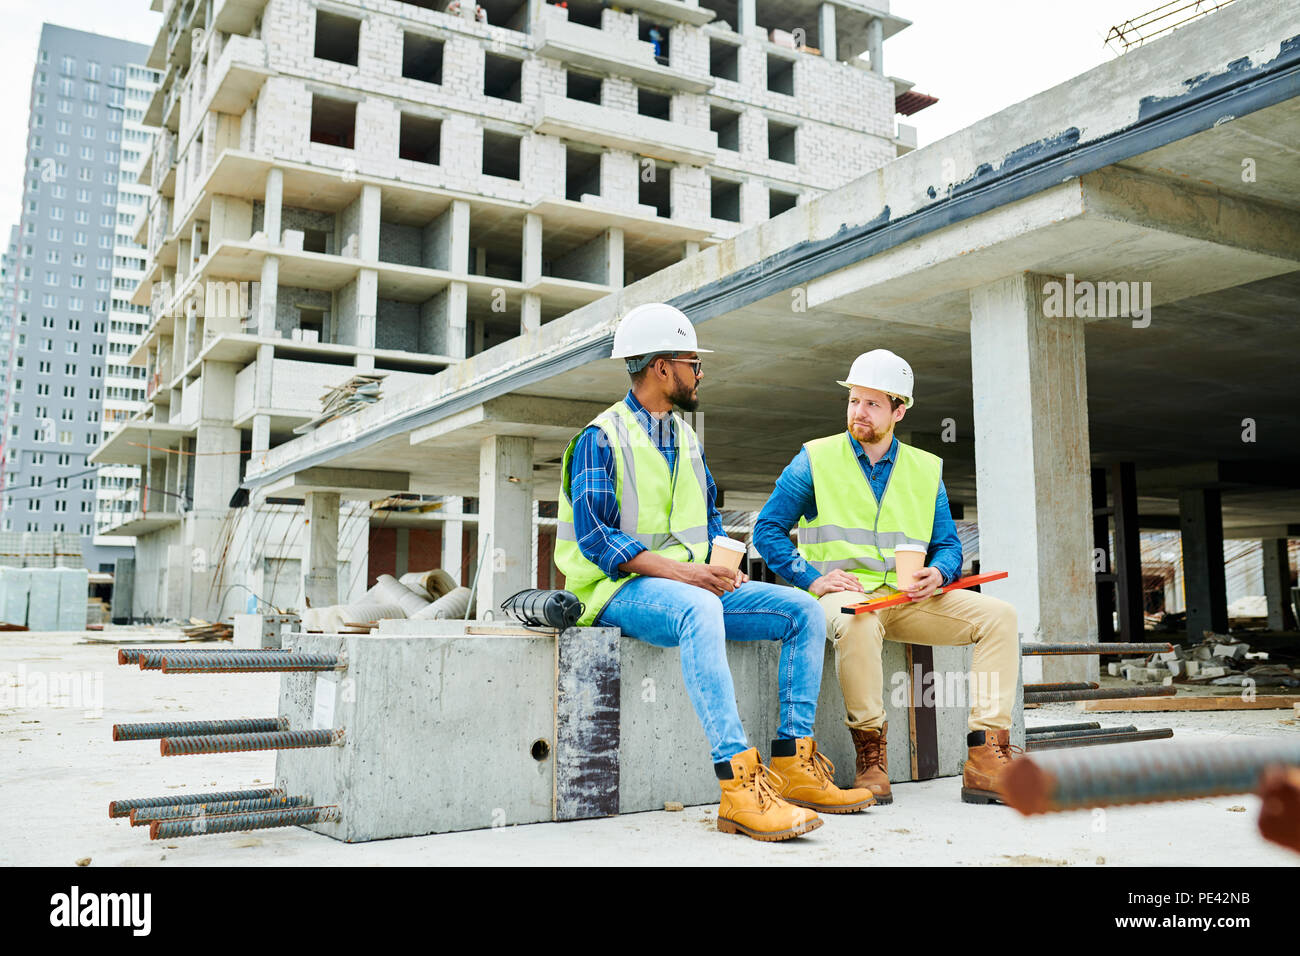 Construction engineers resting and chatting - Stock Image